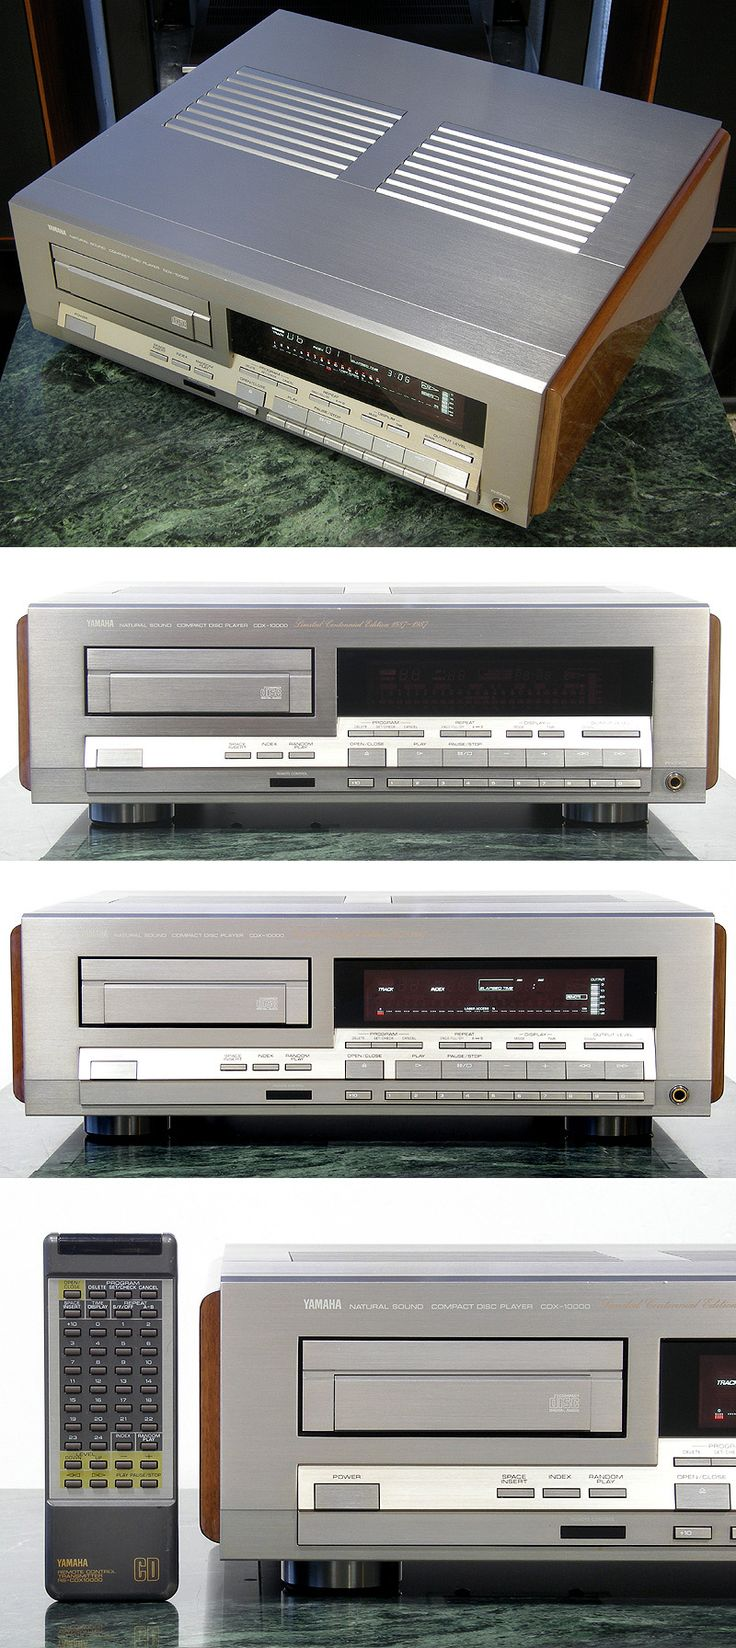 38 Best Cd Images On Pinterest Gadgets Hifi Audio And Appliances 53 Db Stereo Preamp For Tape Or Phonographs Injapanru Yamaha 100 Cdx 10000